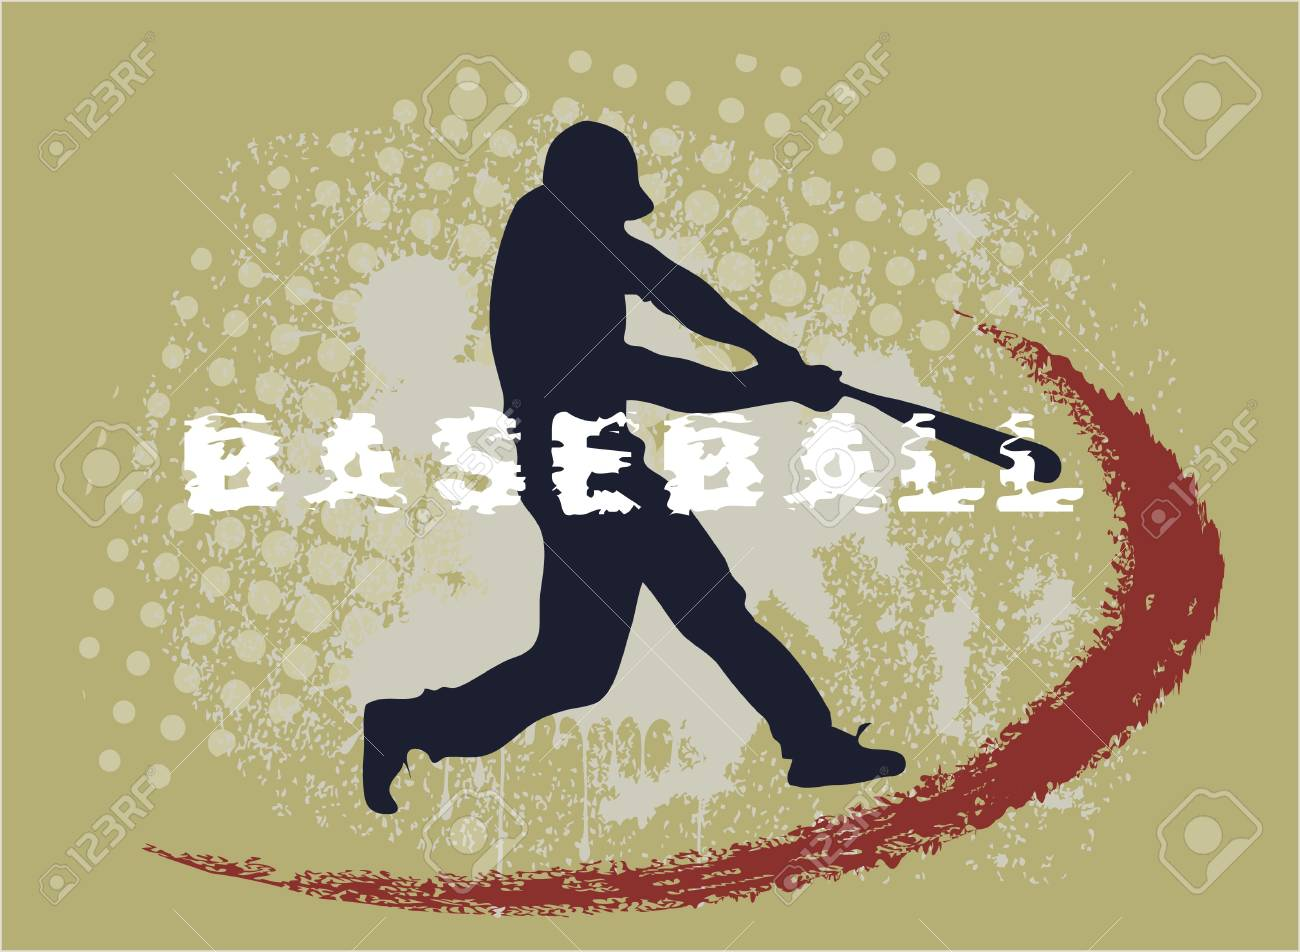 athlete on grunge background Stock Vector - 15992126